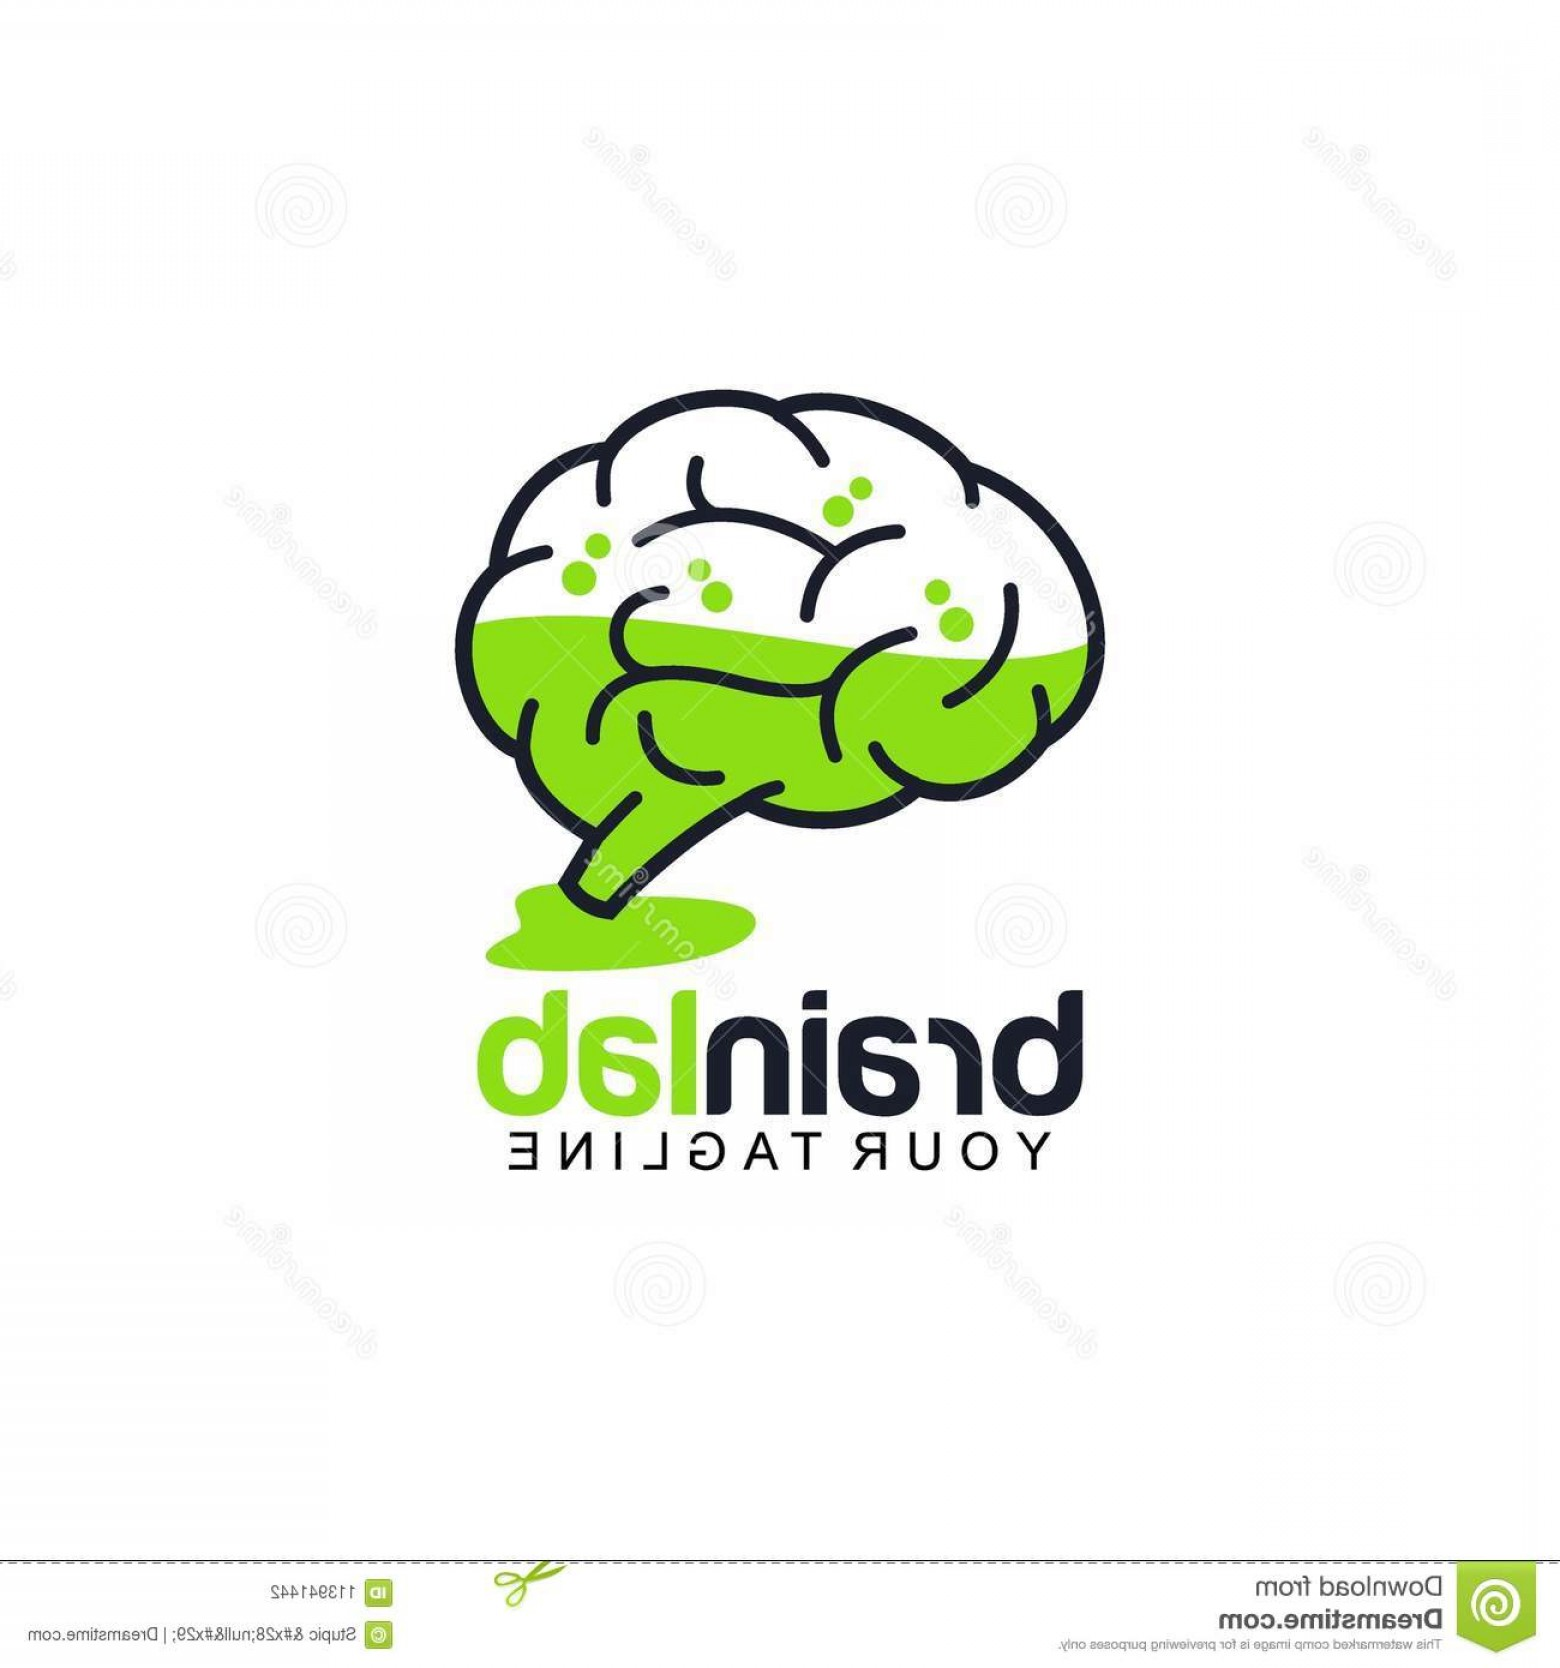 Brain Vector Art: Creative Brain Logo Design Vector Art Logo Creative Brain Logo Design Various Used Purposed Just You Great People Image